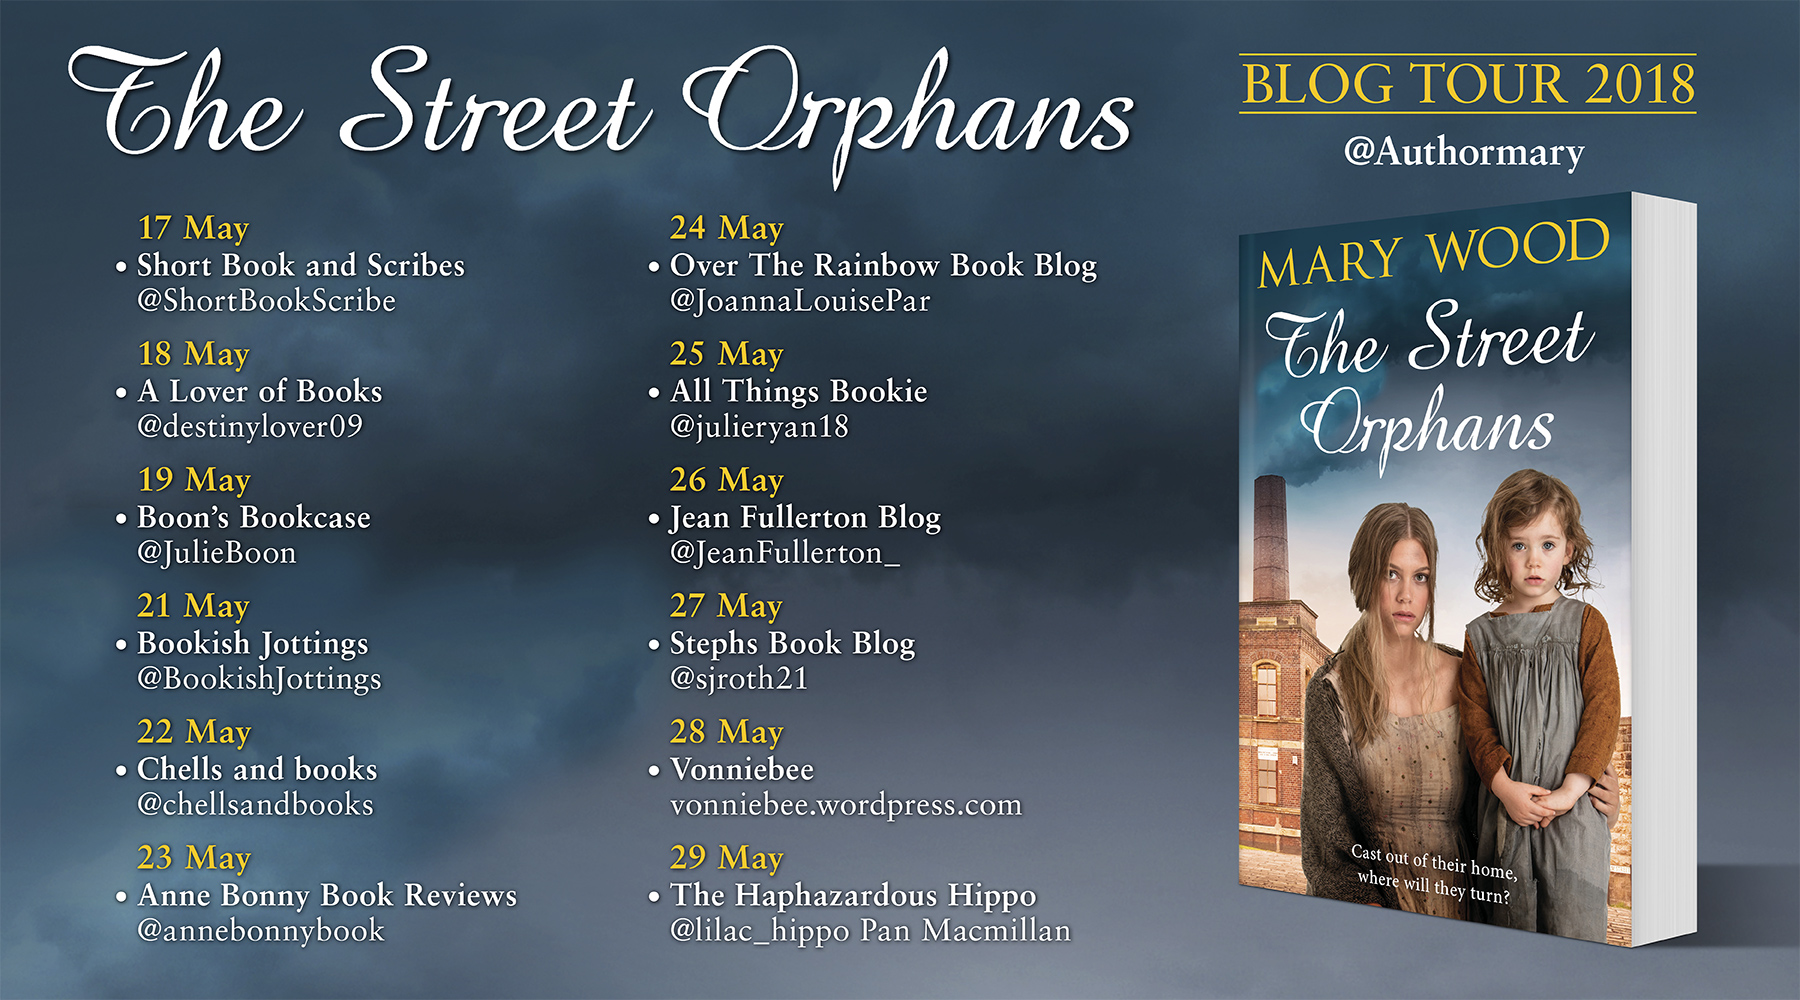 The Street Orphans - Blog tour 2018.jpg